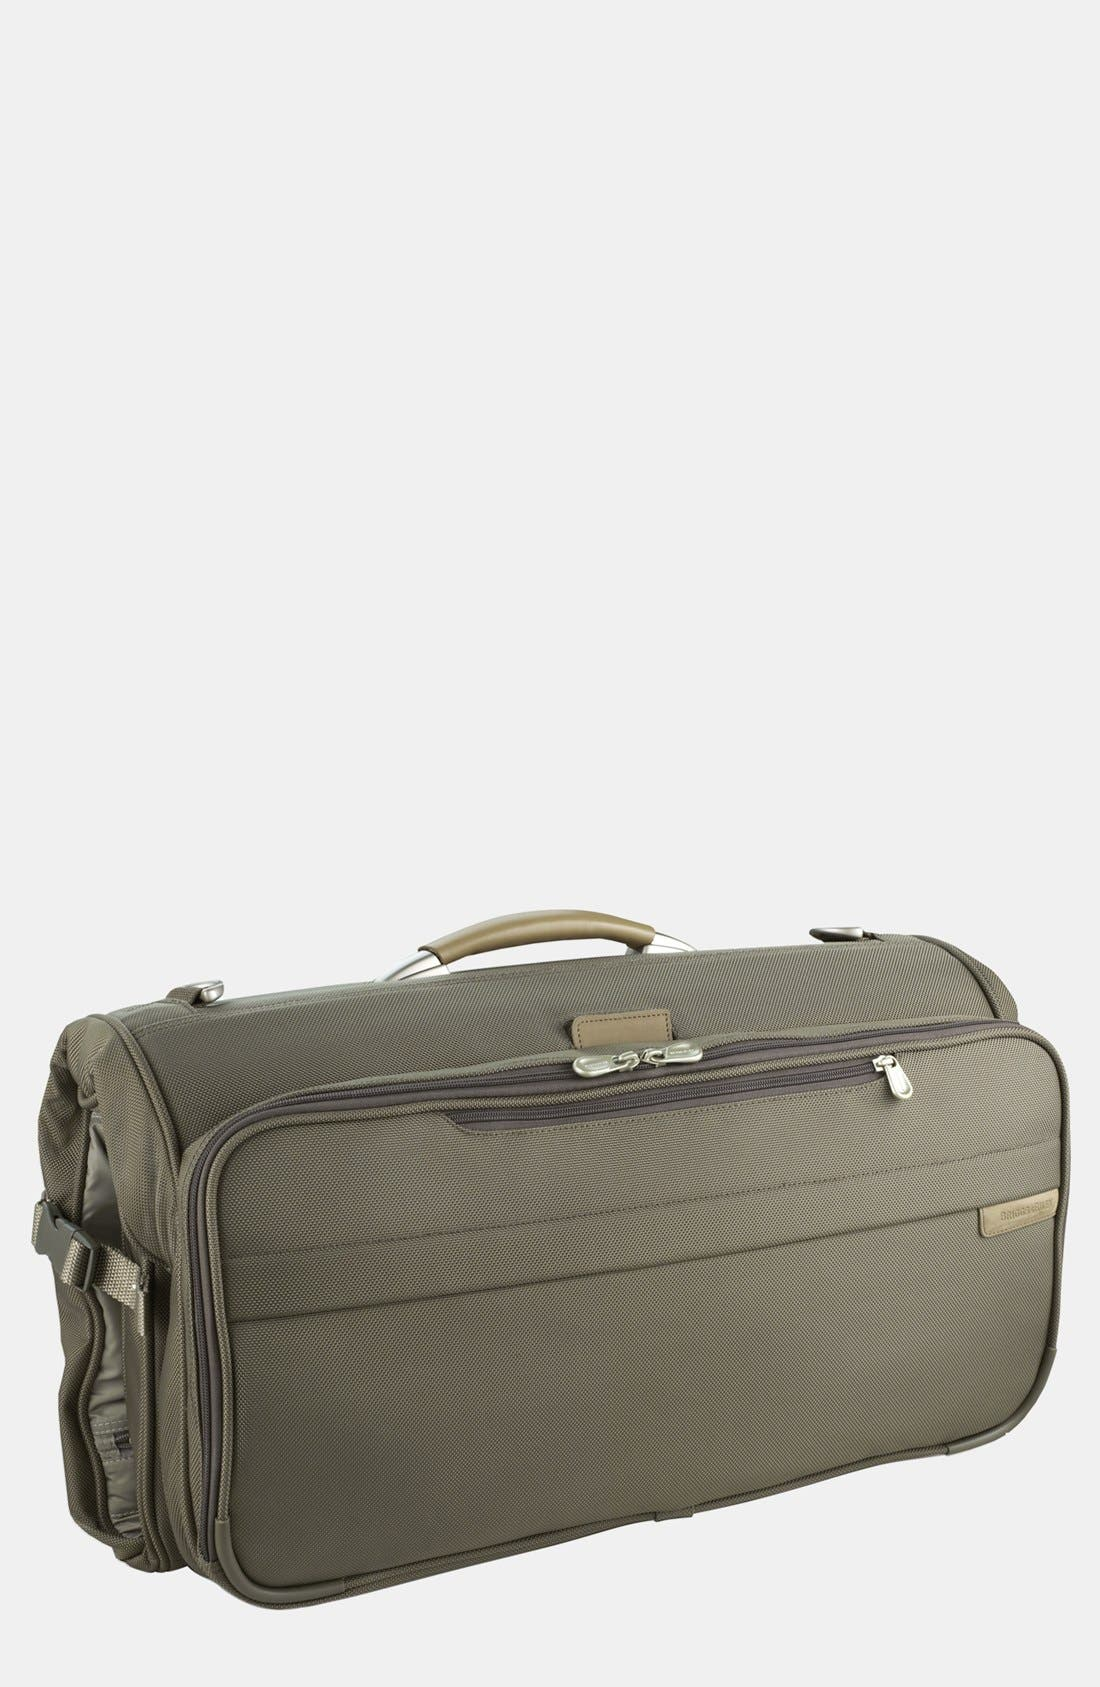 Alternate Image 1 Selected - Briggs & Riley Baseline - Compact Garment Bag